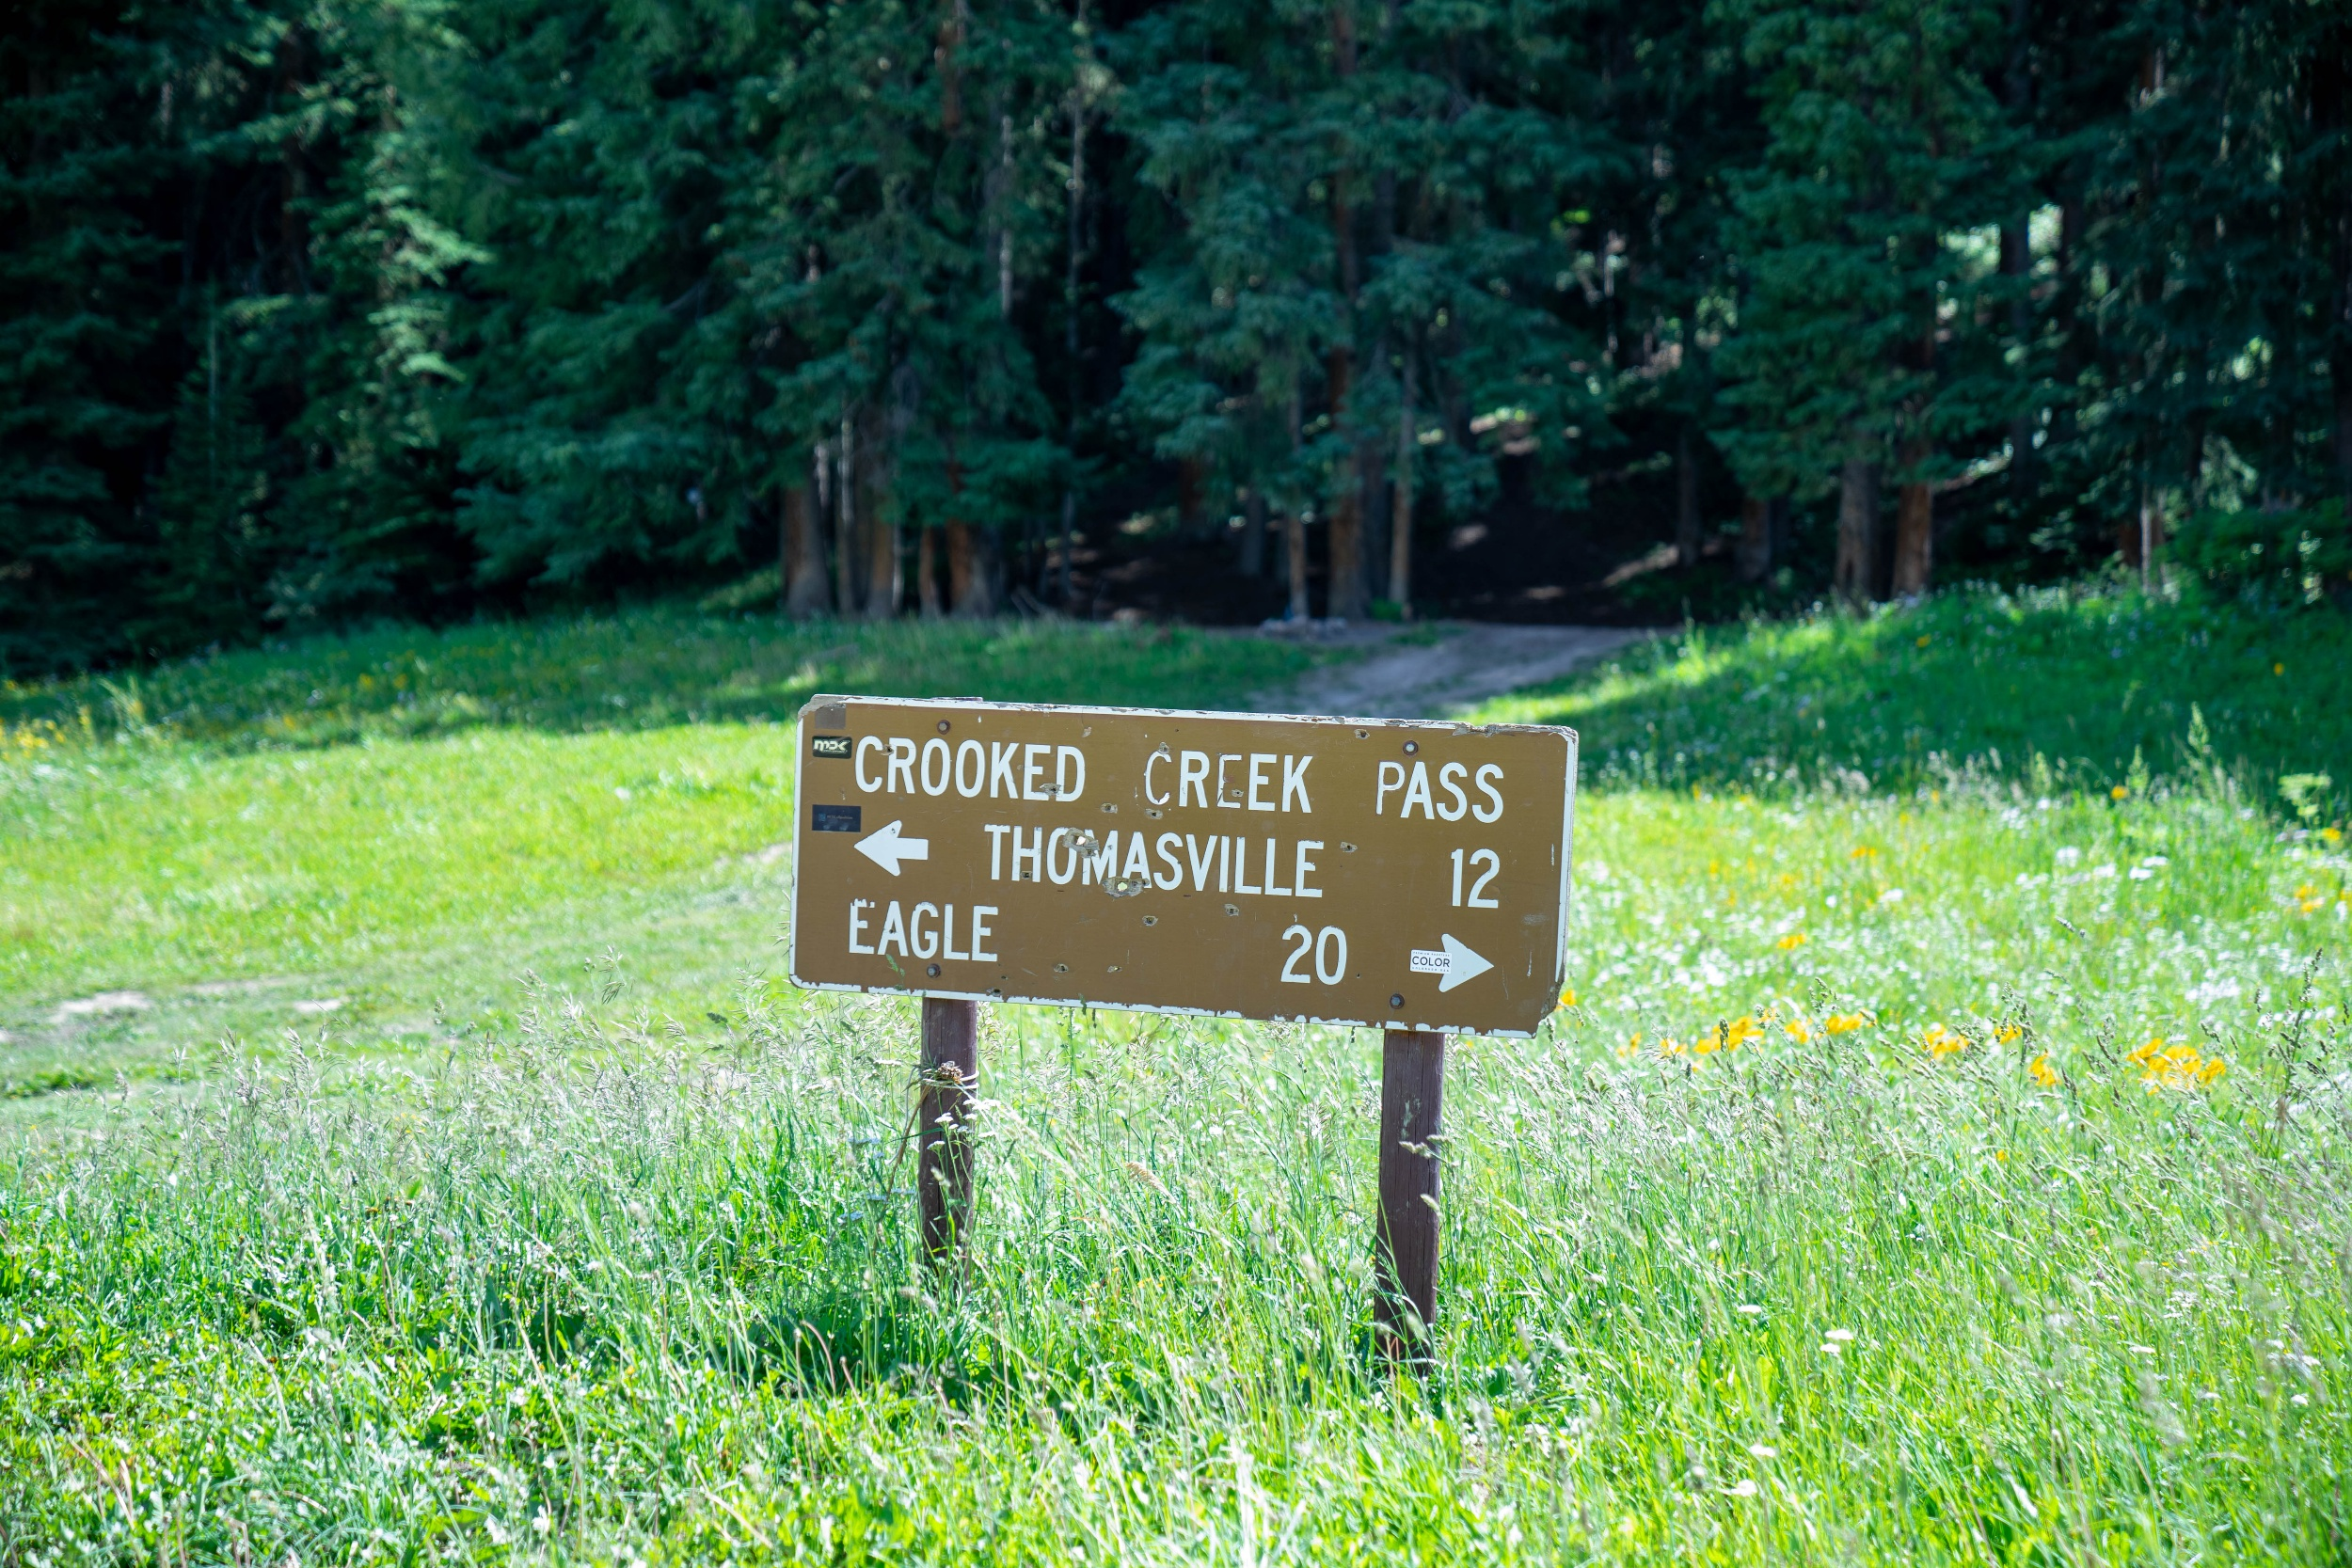 The sign at the crest of crooked Creek.